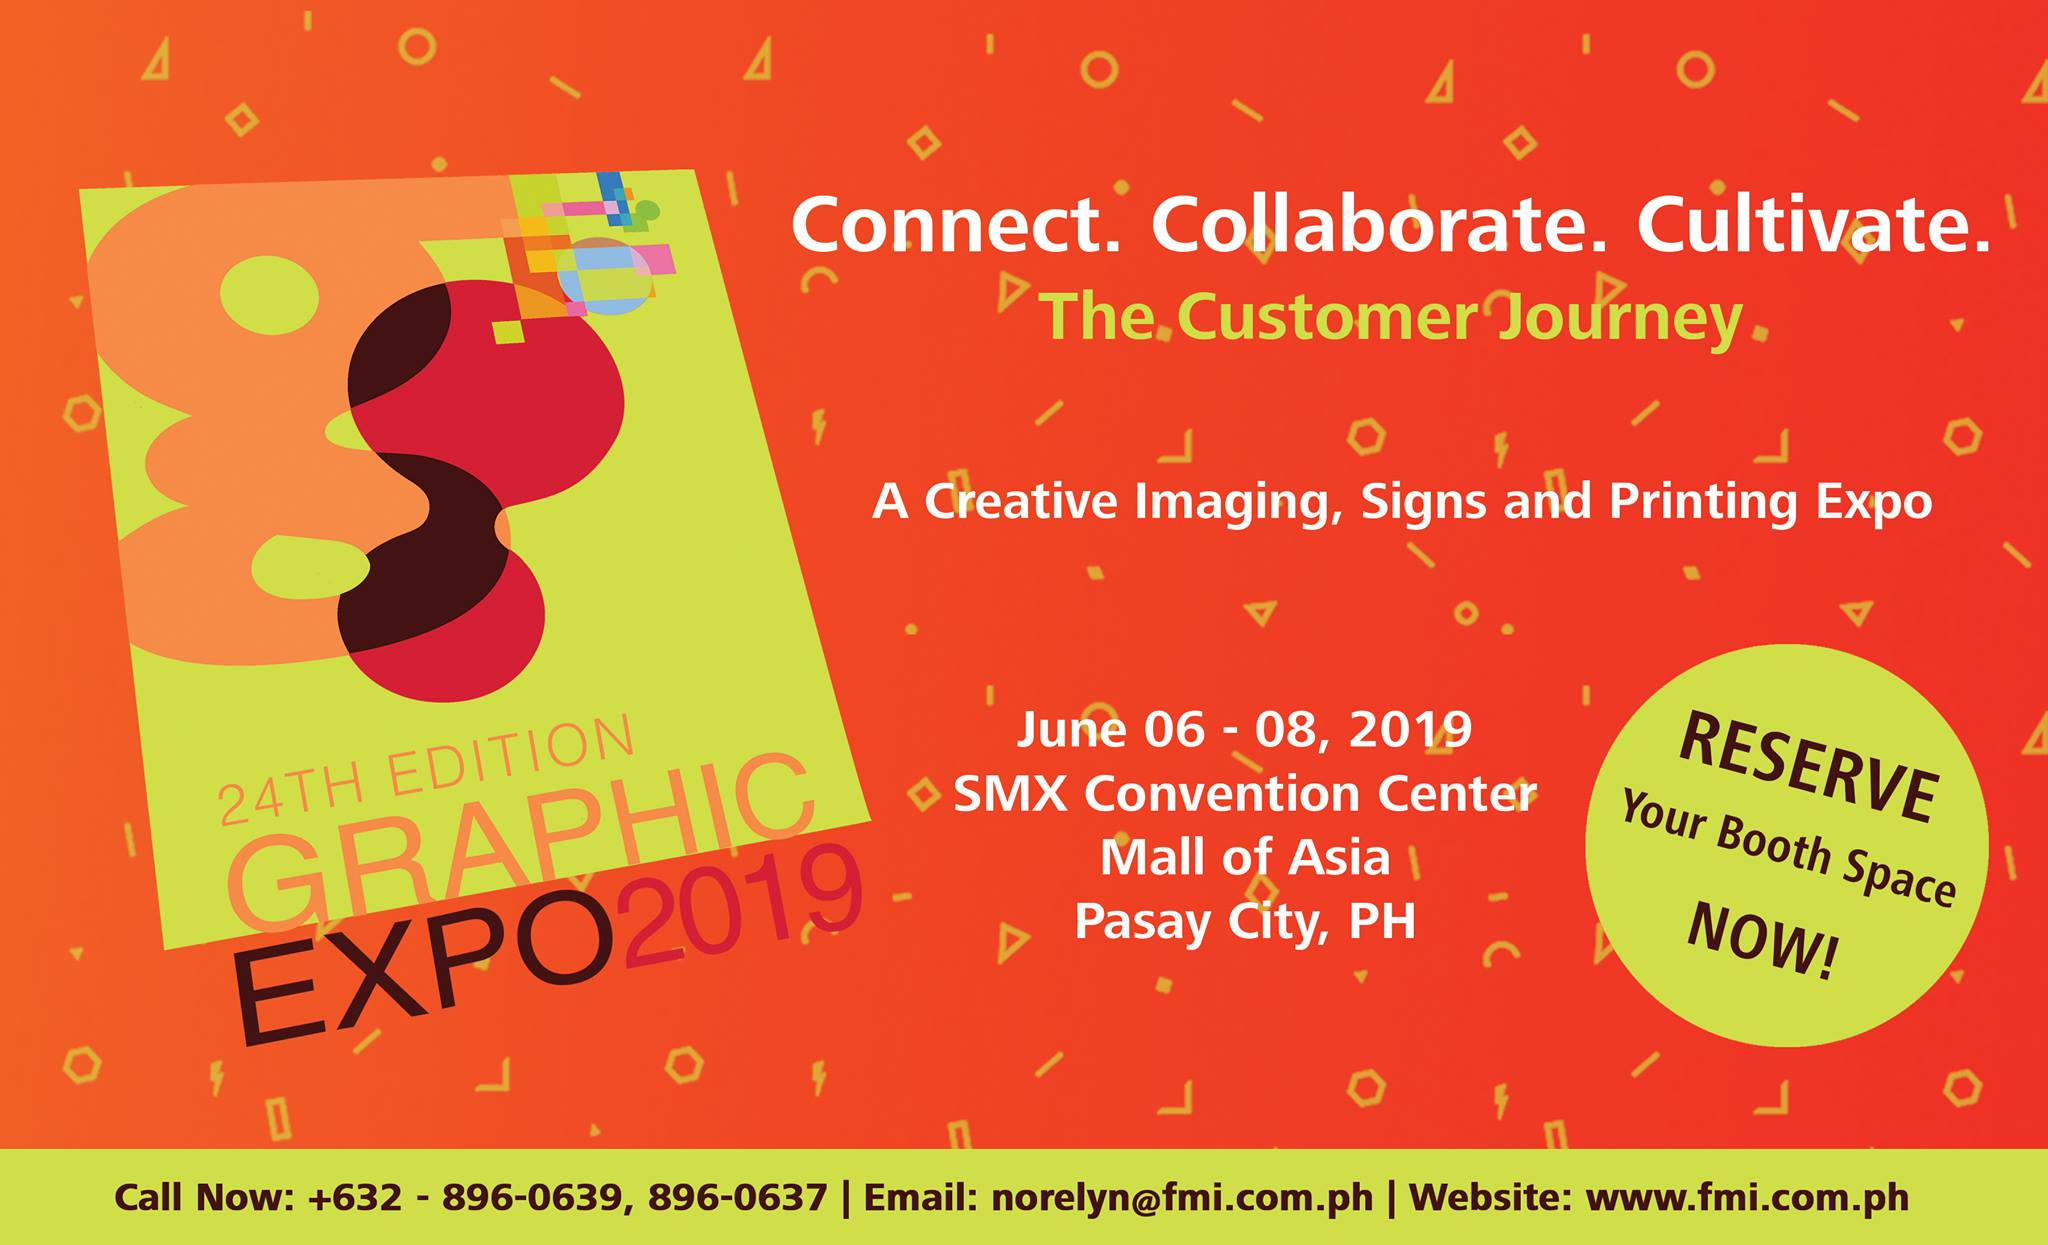 THE 24TH GRAPHIC EXPO 2019